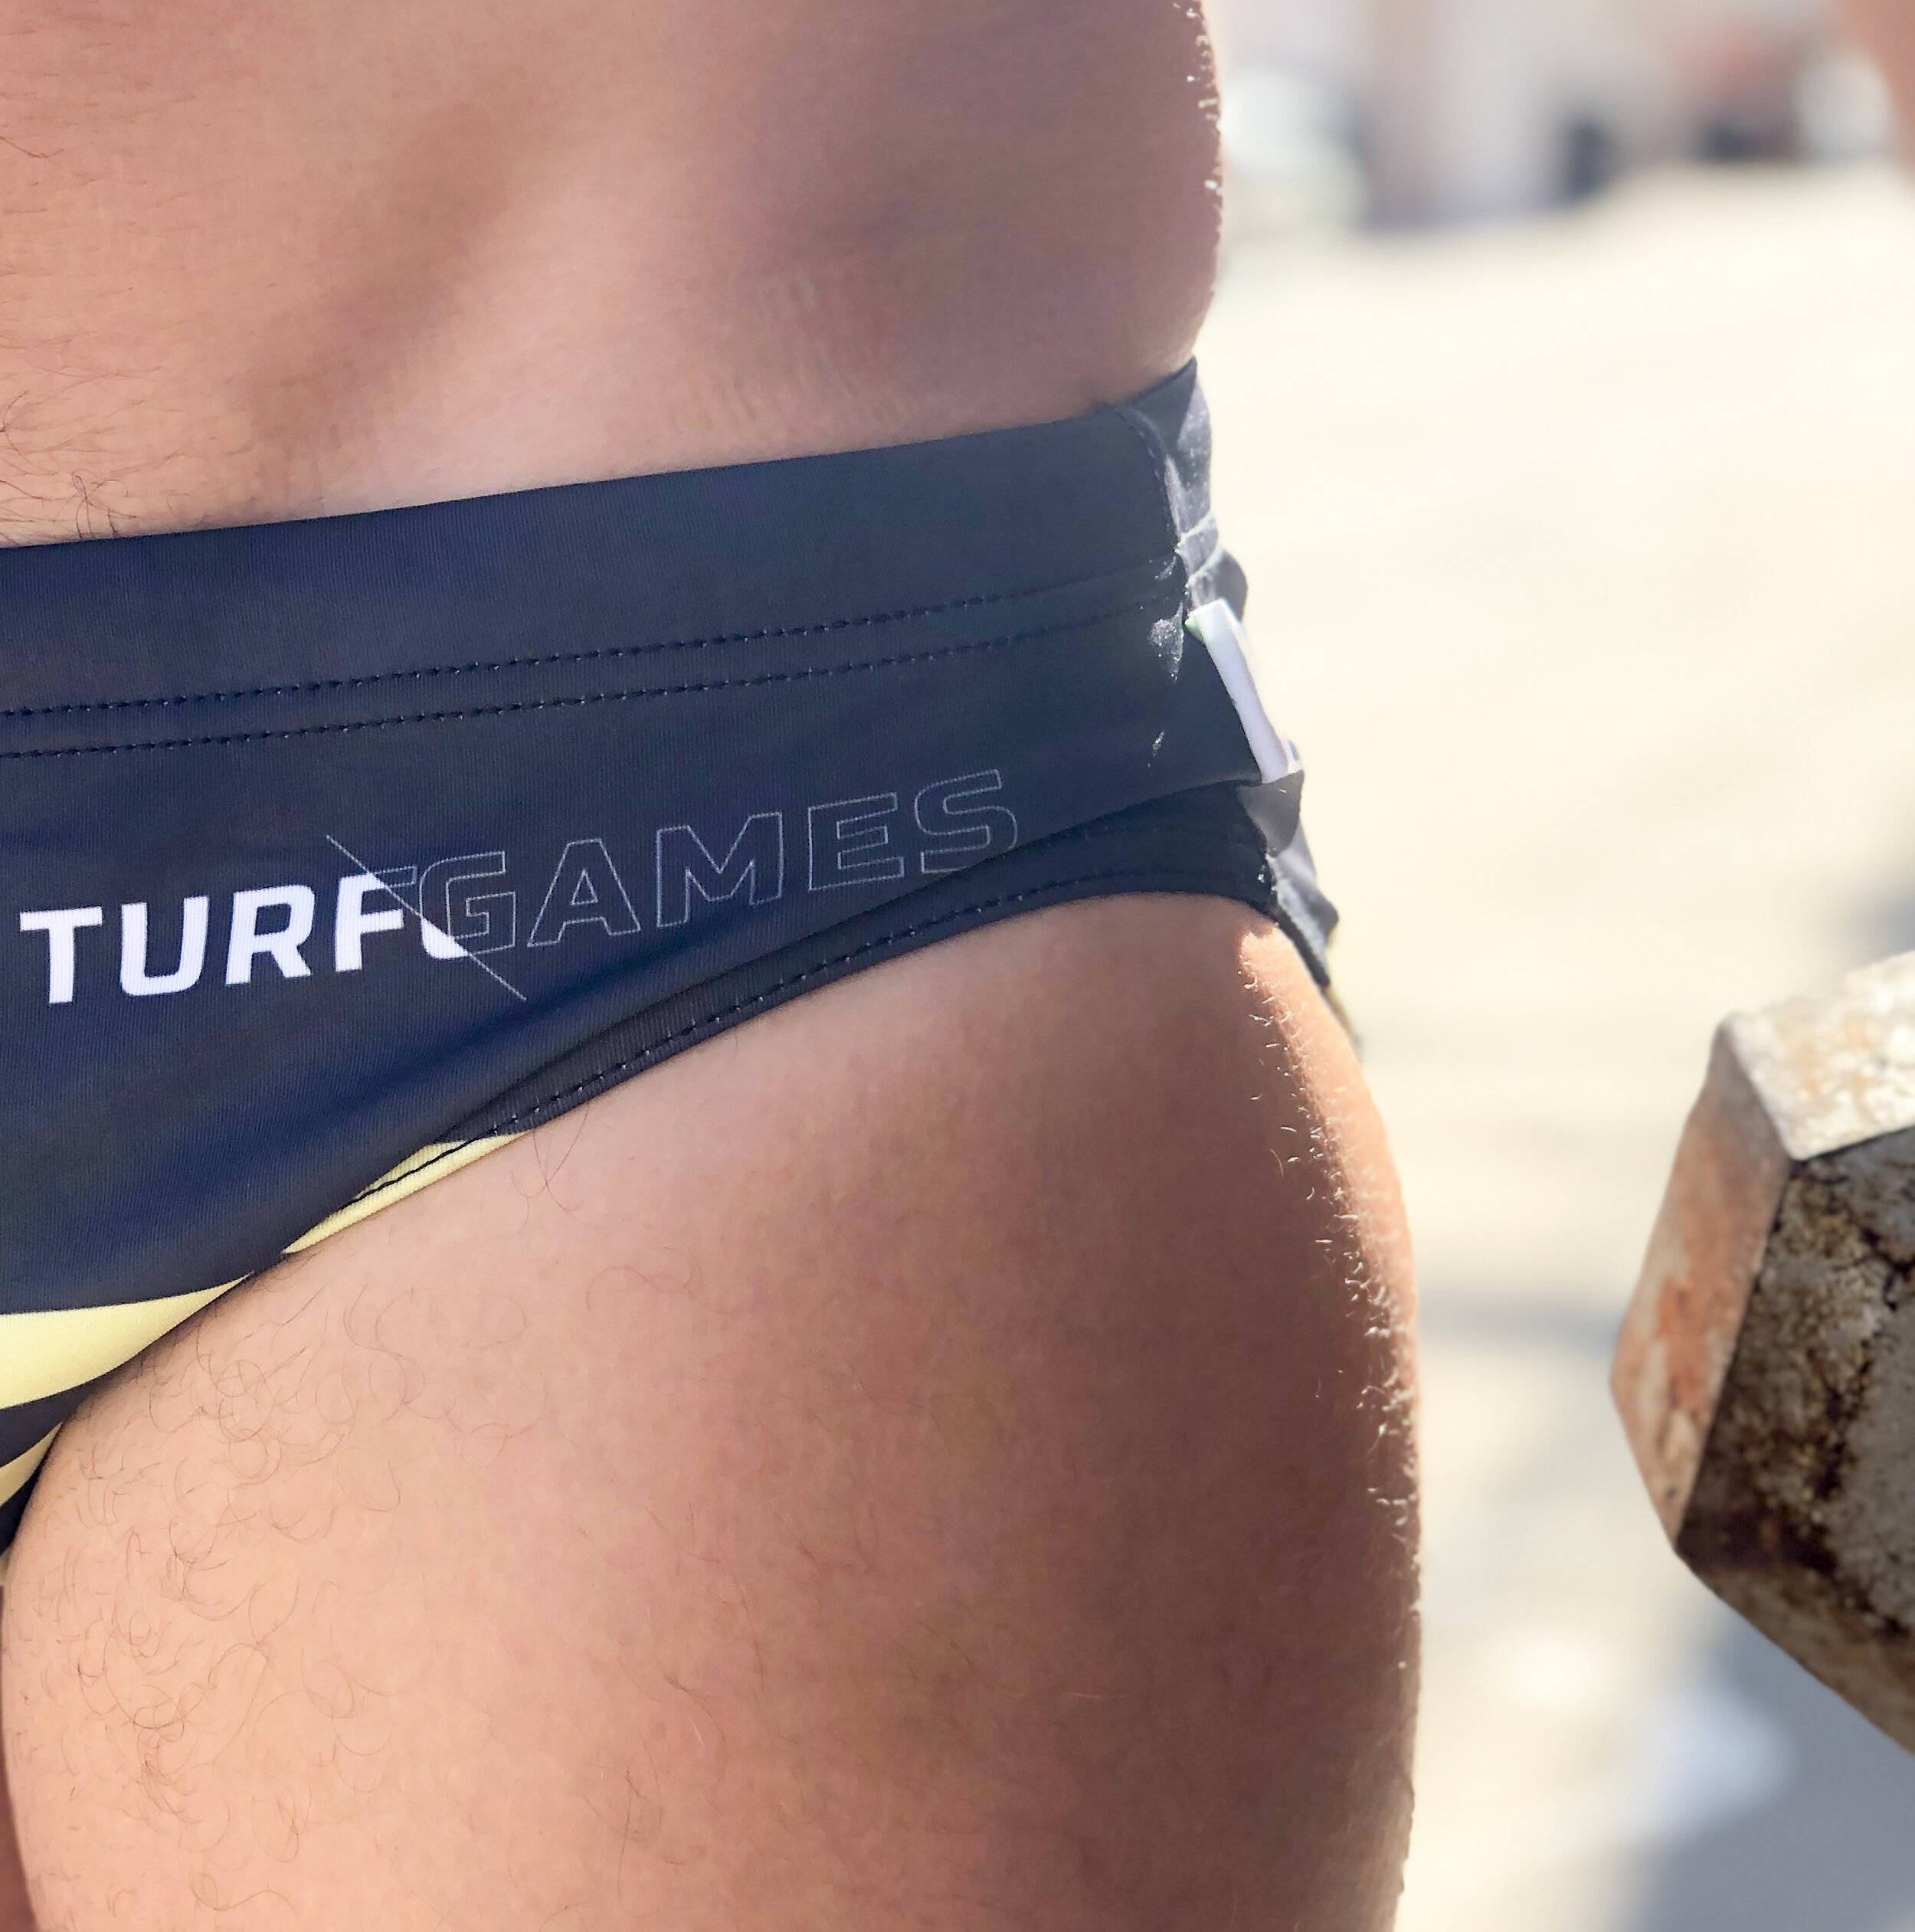 Rep the Turf Games Noodle Bagz for your prehab swim on Friday